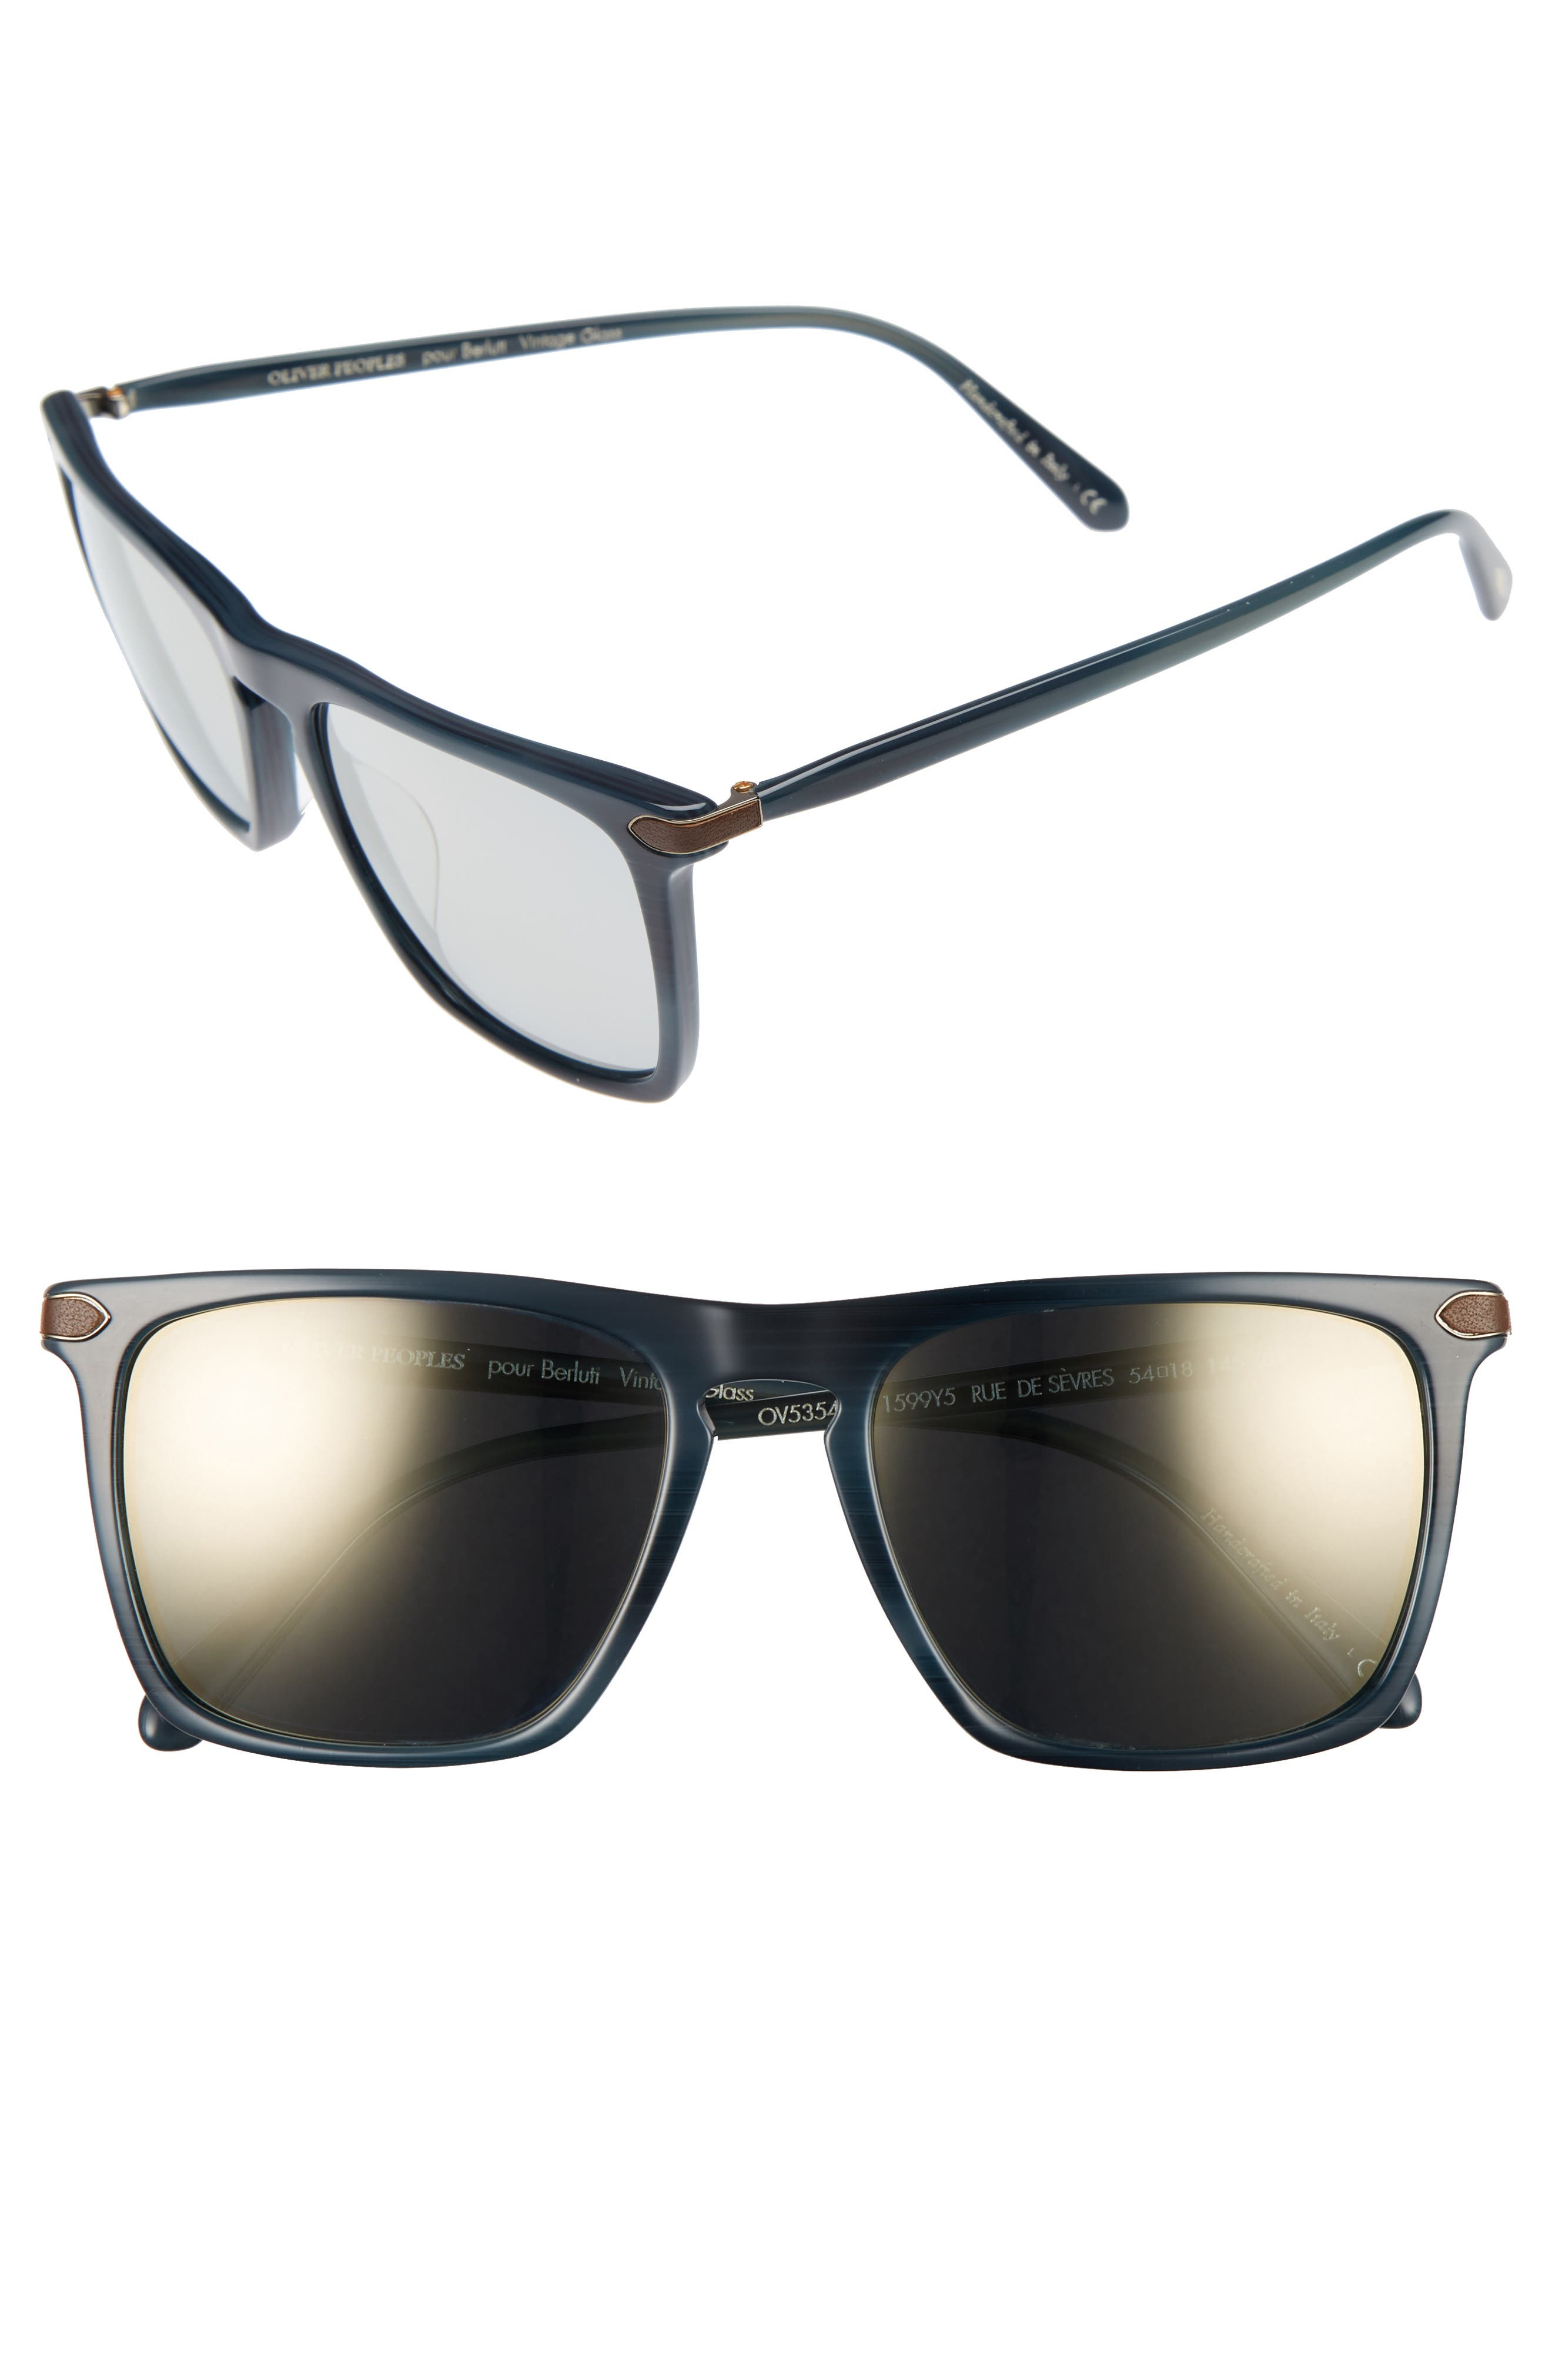 OLIVER PEOPLES Rue De Sevres 54mm Polarized Sunglasses